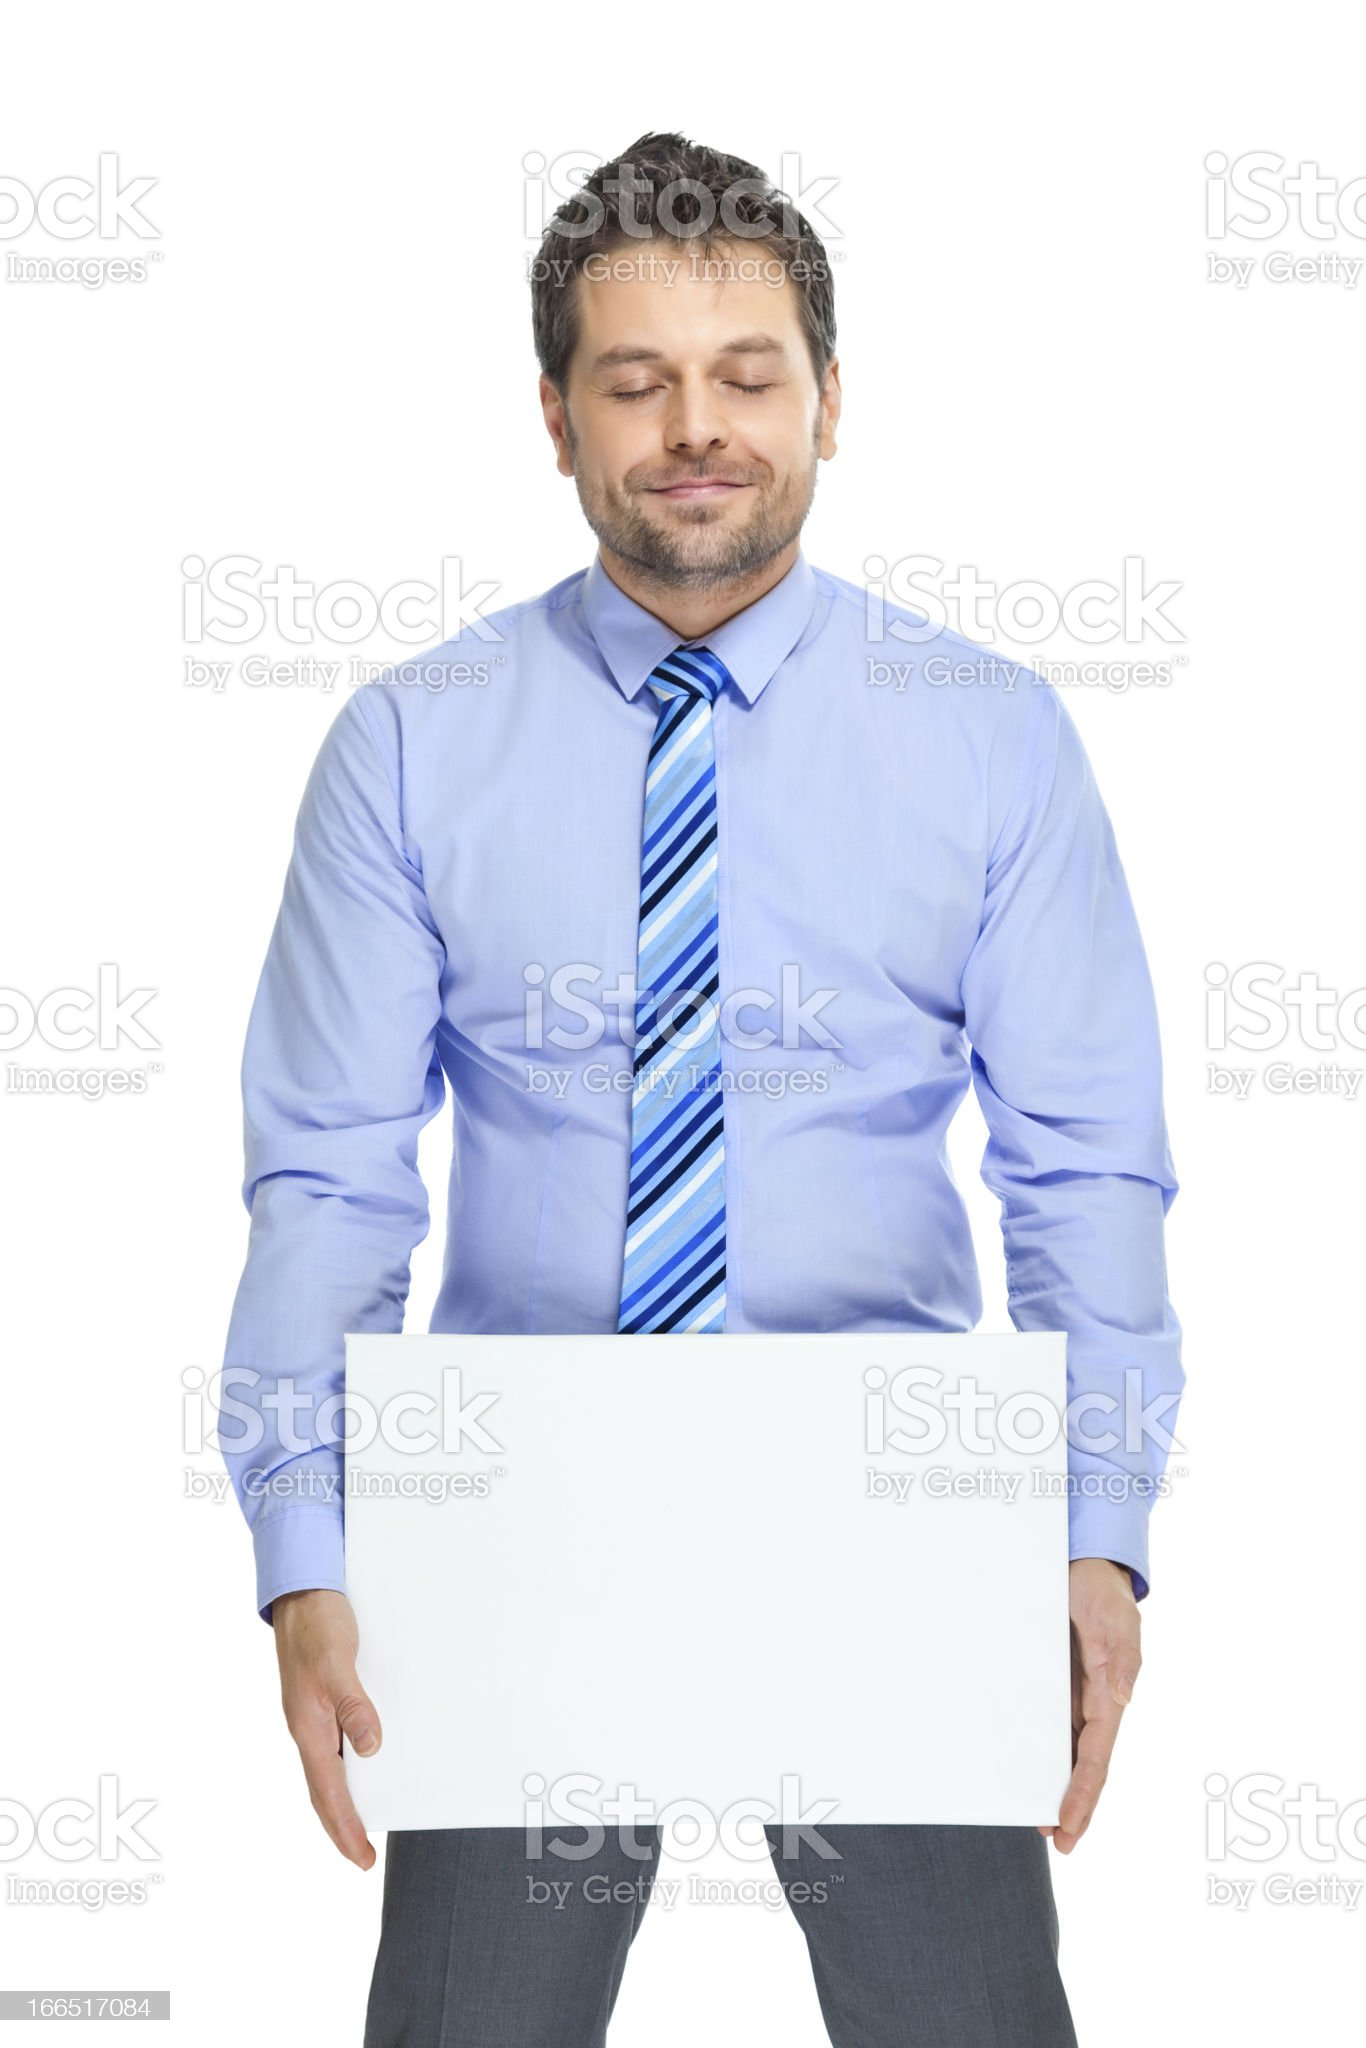 Office clerk royalty-free stock photo